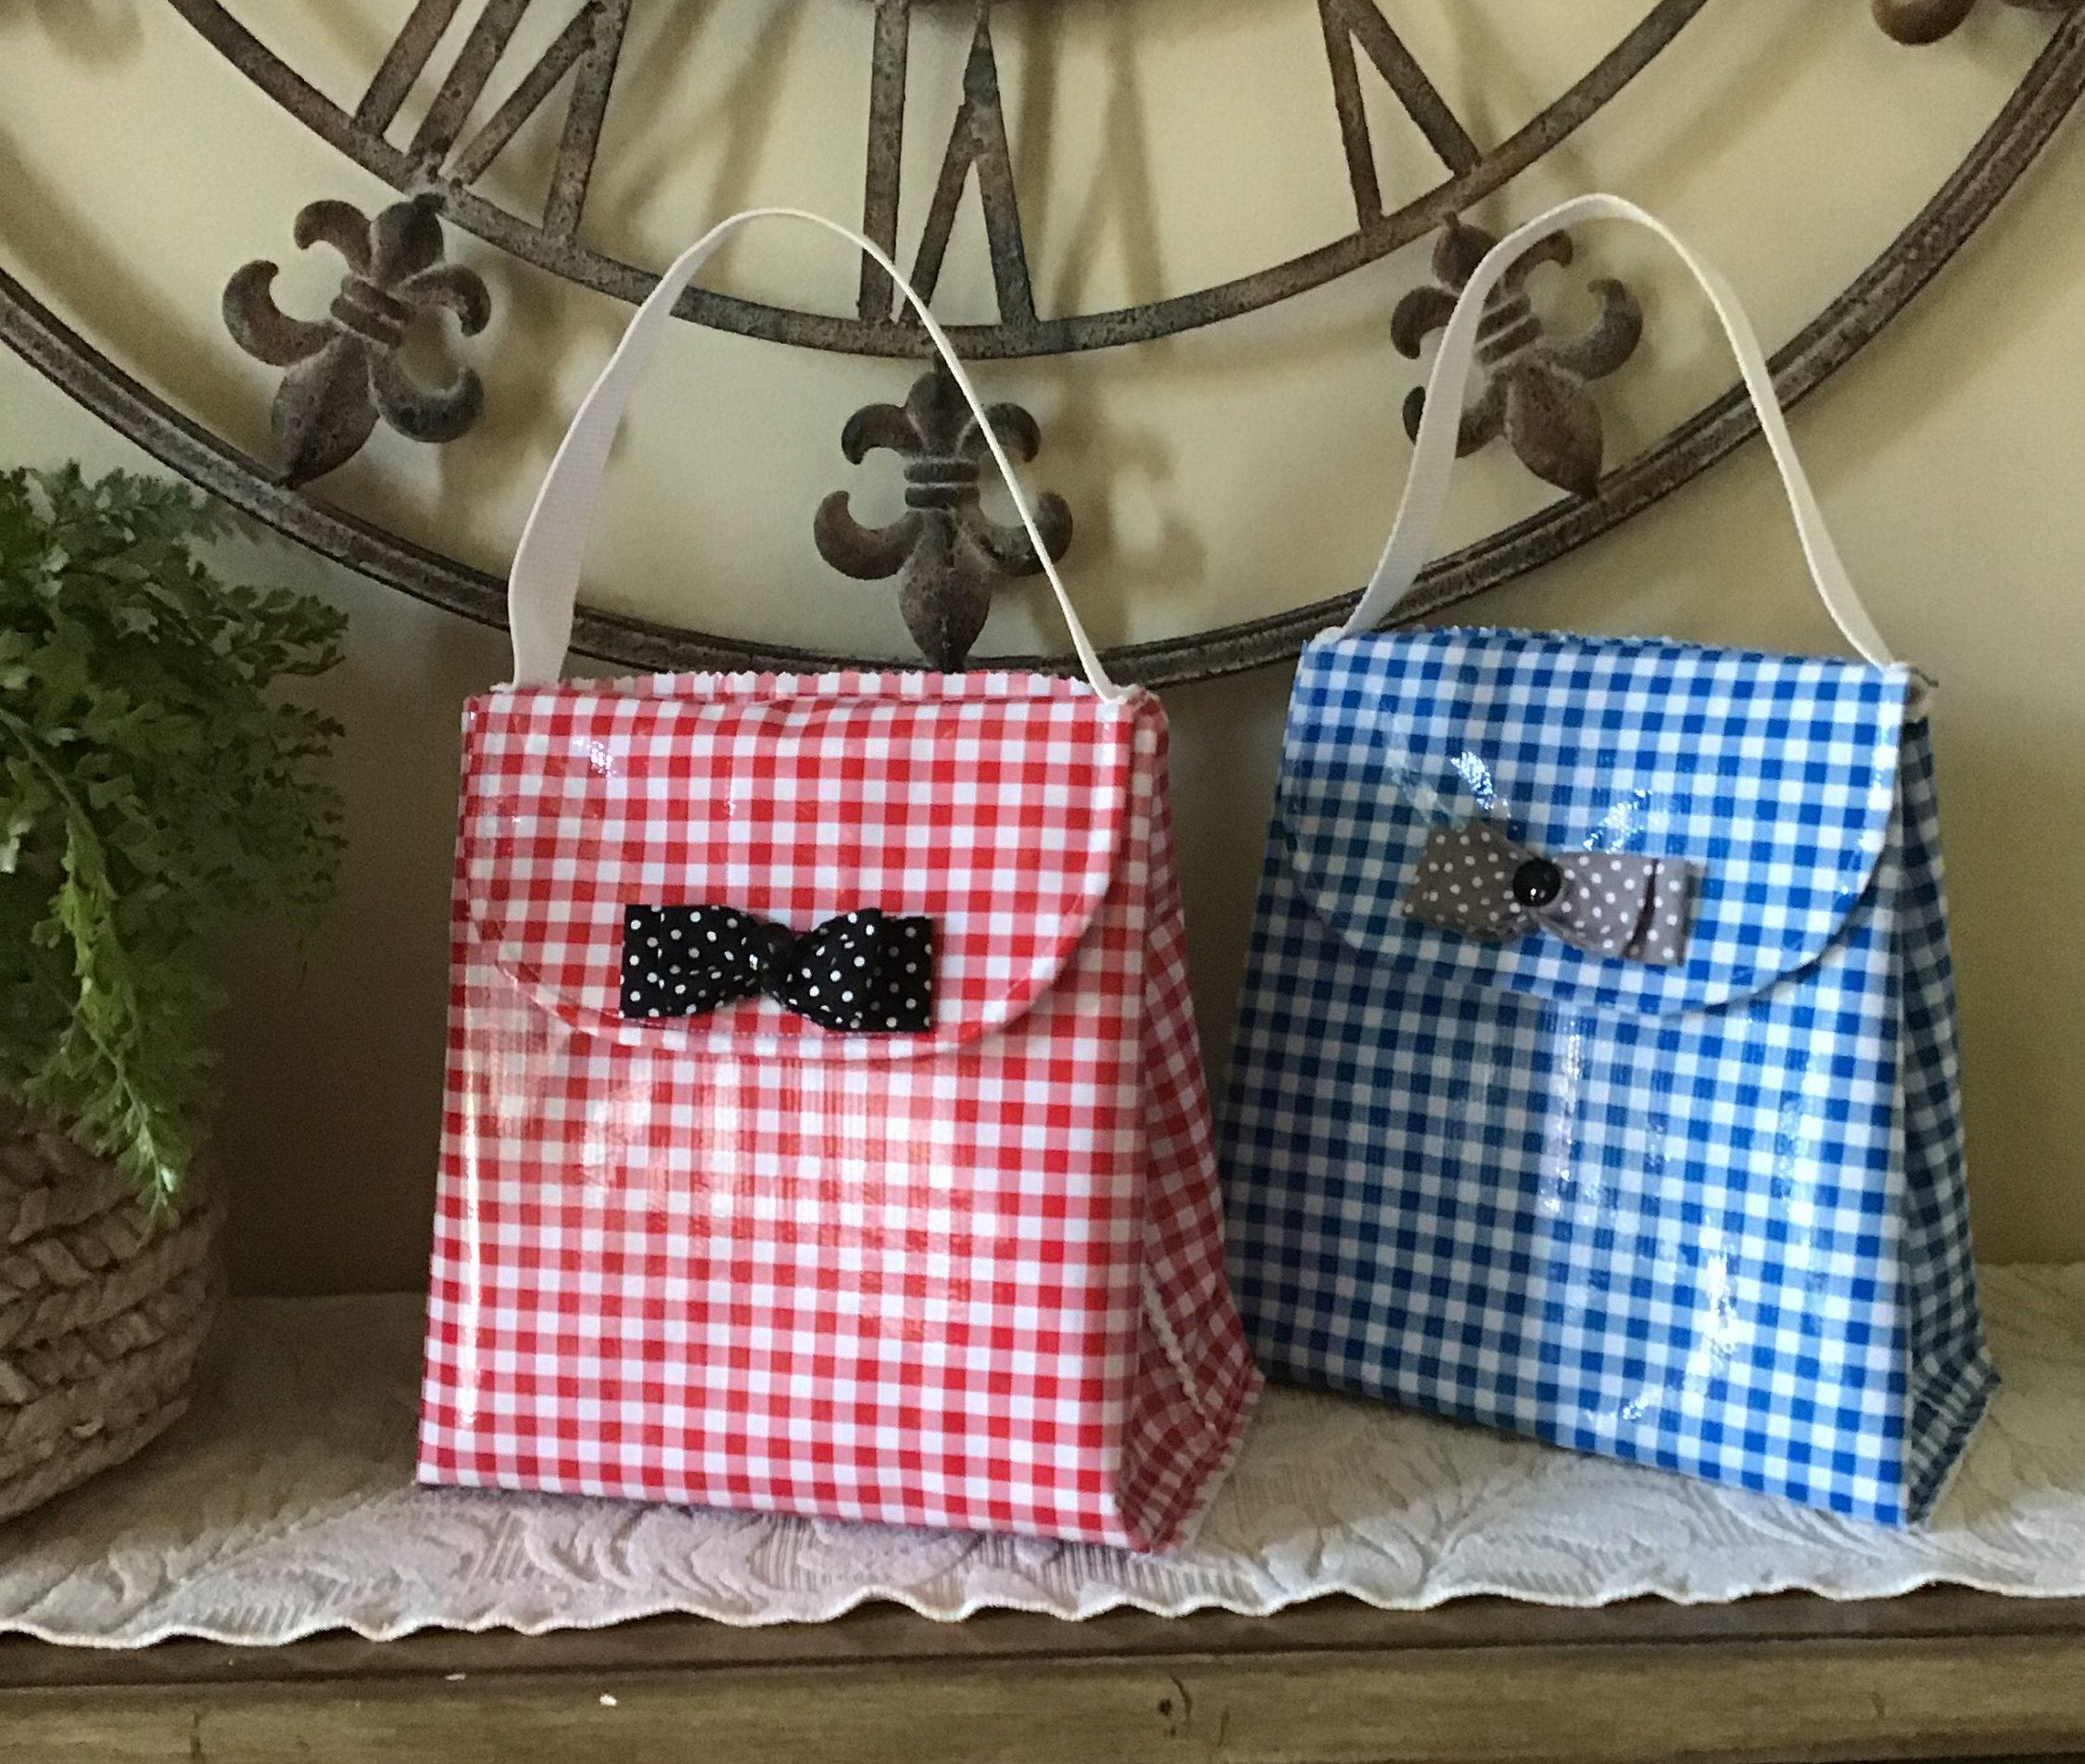 Insulated Lunch Bag, Red Gingham, Blue Gingham, Oilcloth, Lined, thermal layer, easy clean